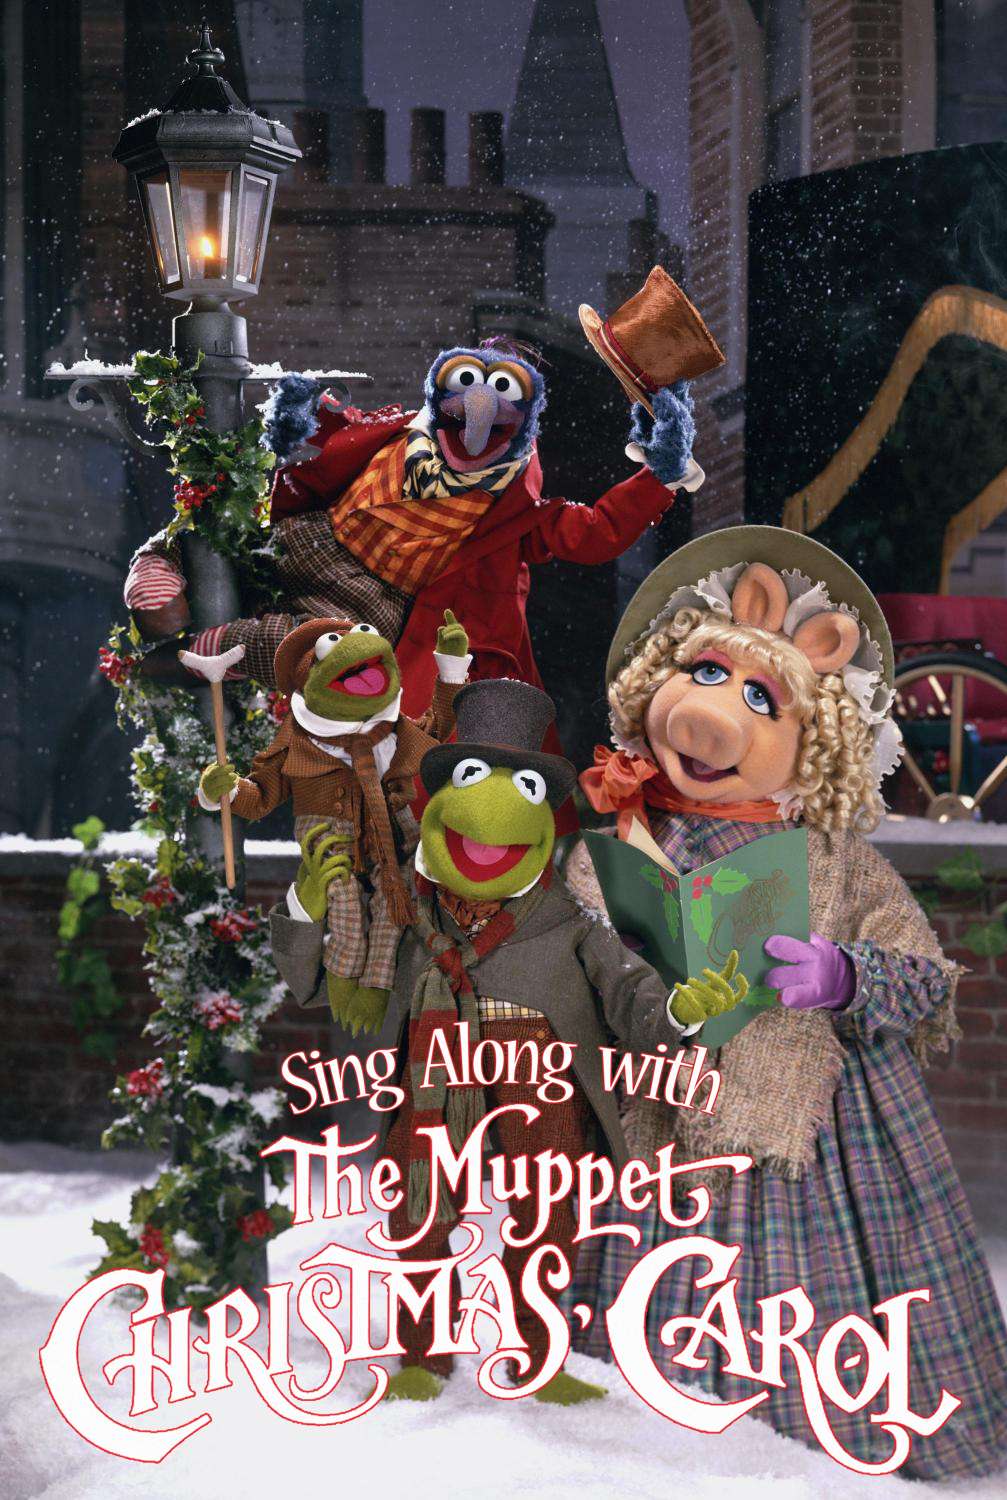 the-muppet-christmas-carol--sing-along